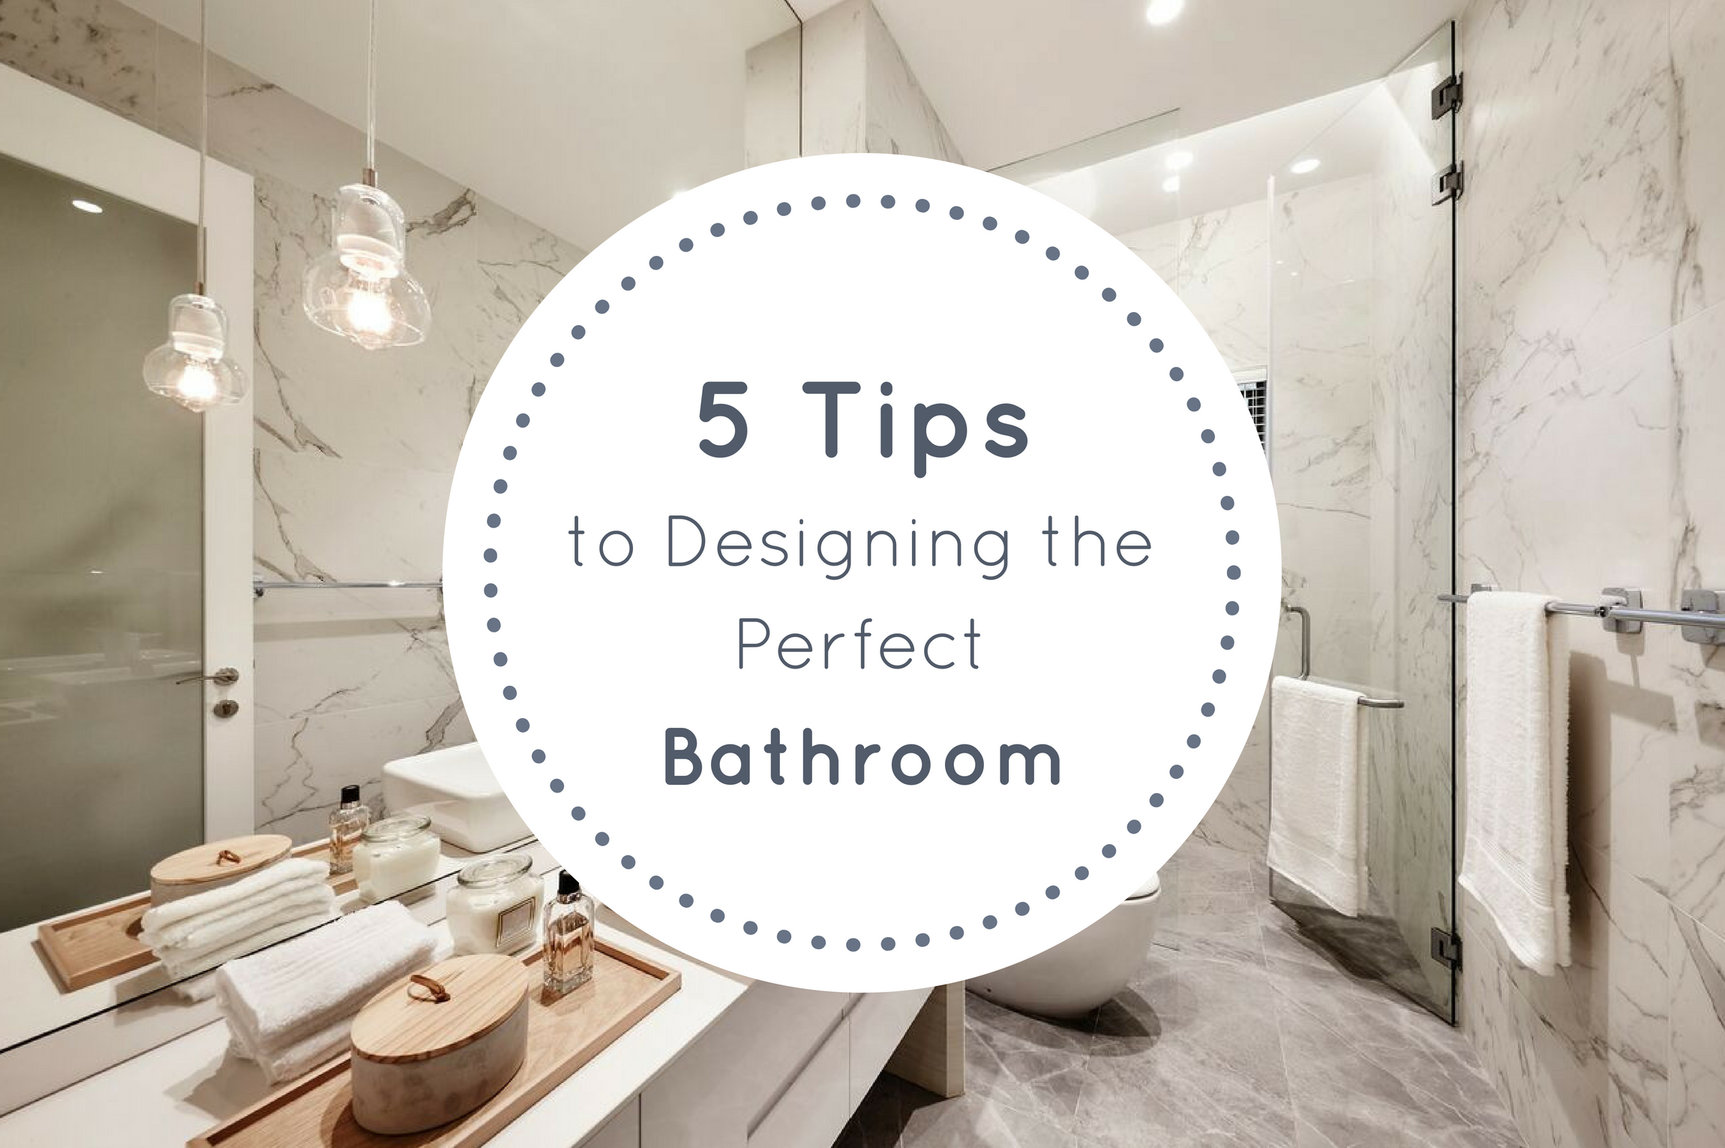 5 Changes You Could Make To Your Bathroom That You'll Absolutely Love